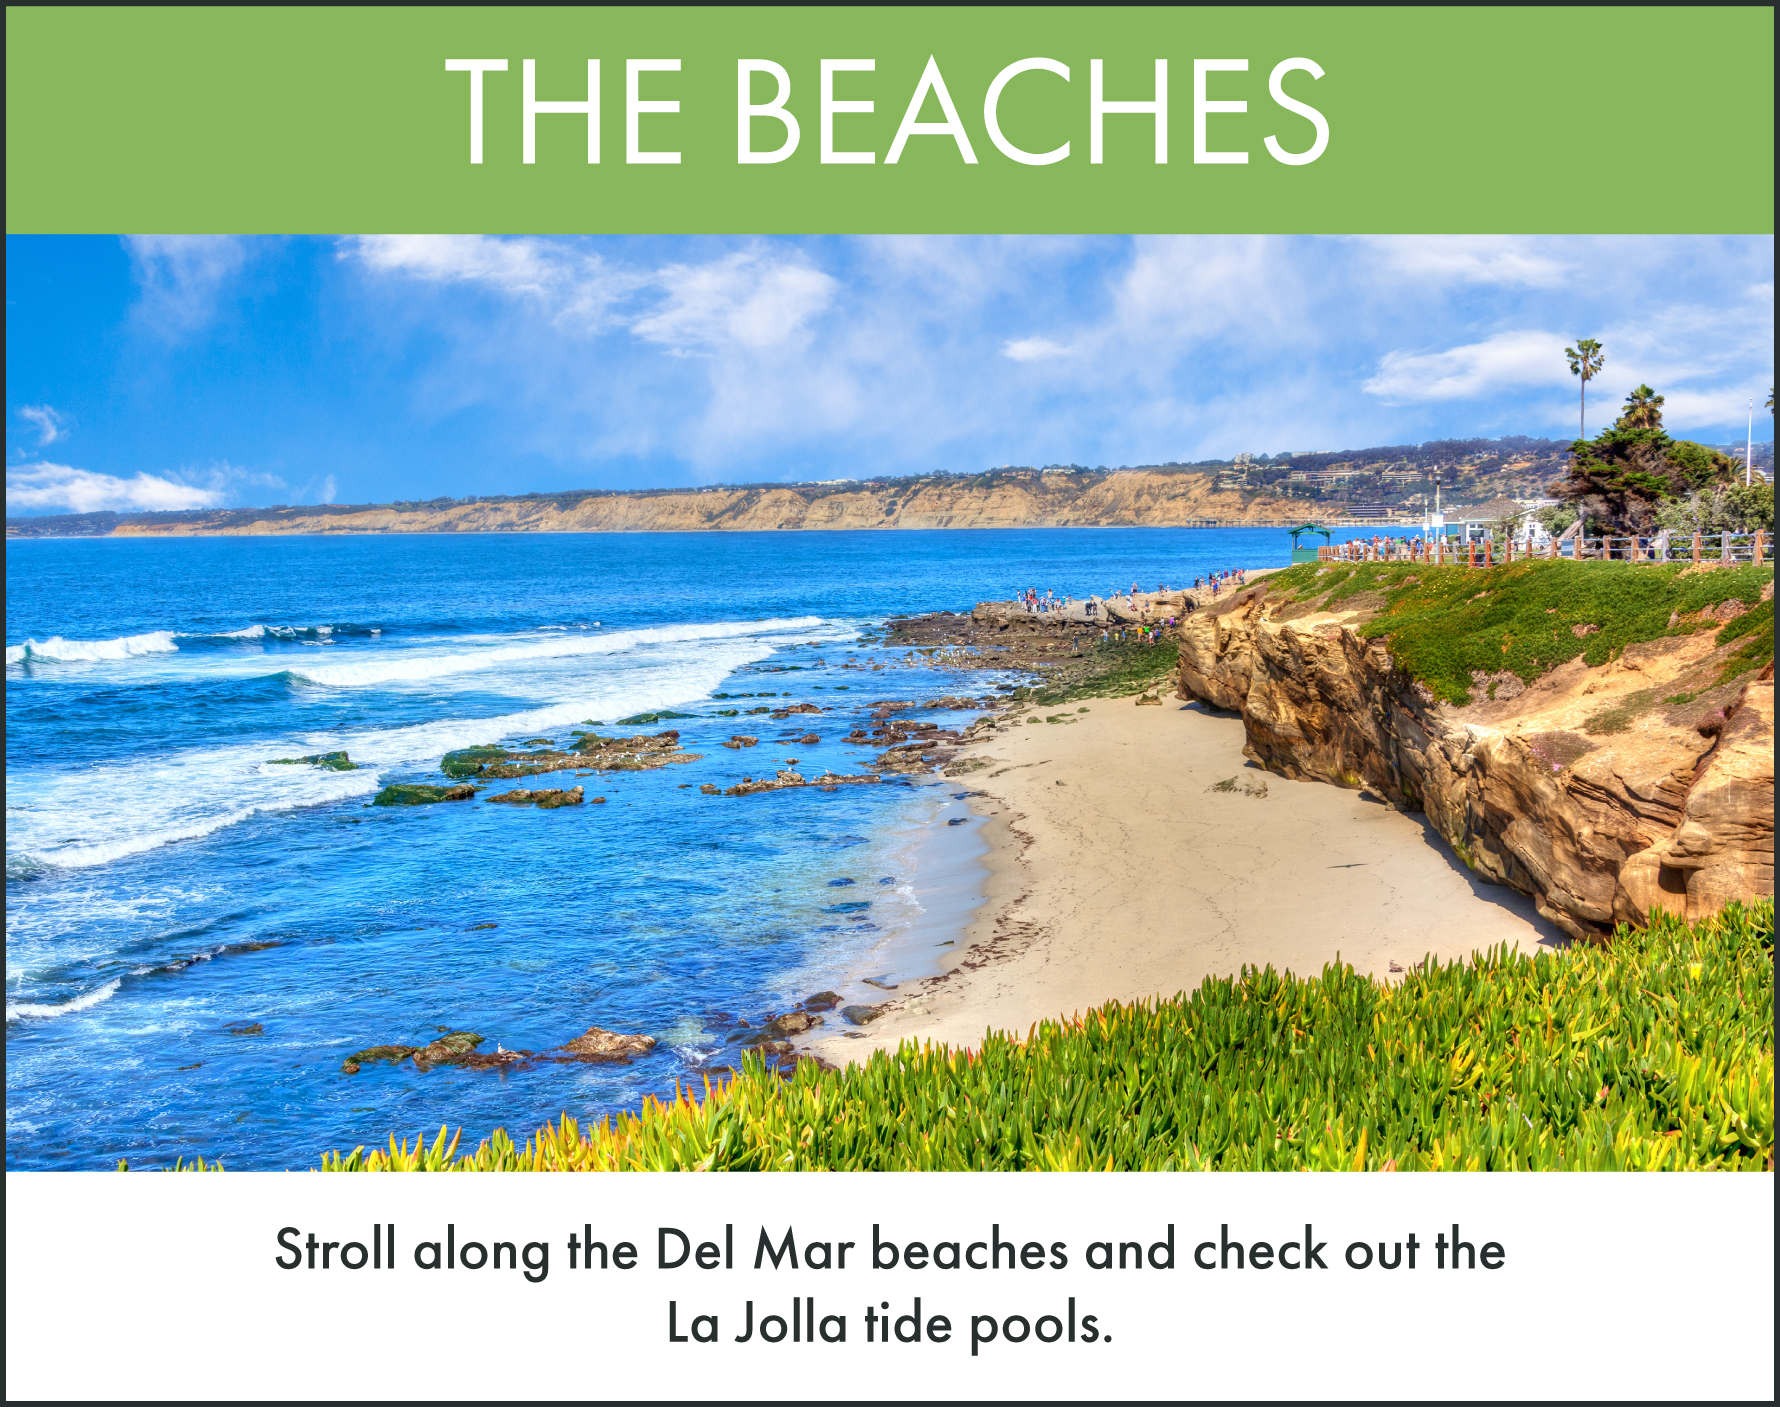 Top things to do in San Diego: Go to the beaches